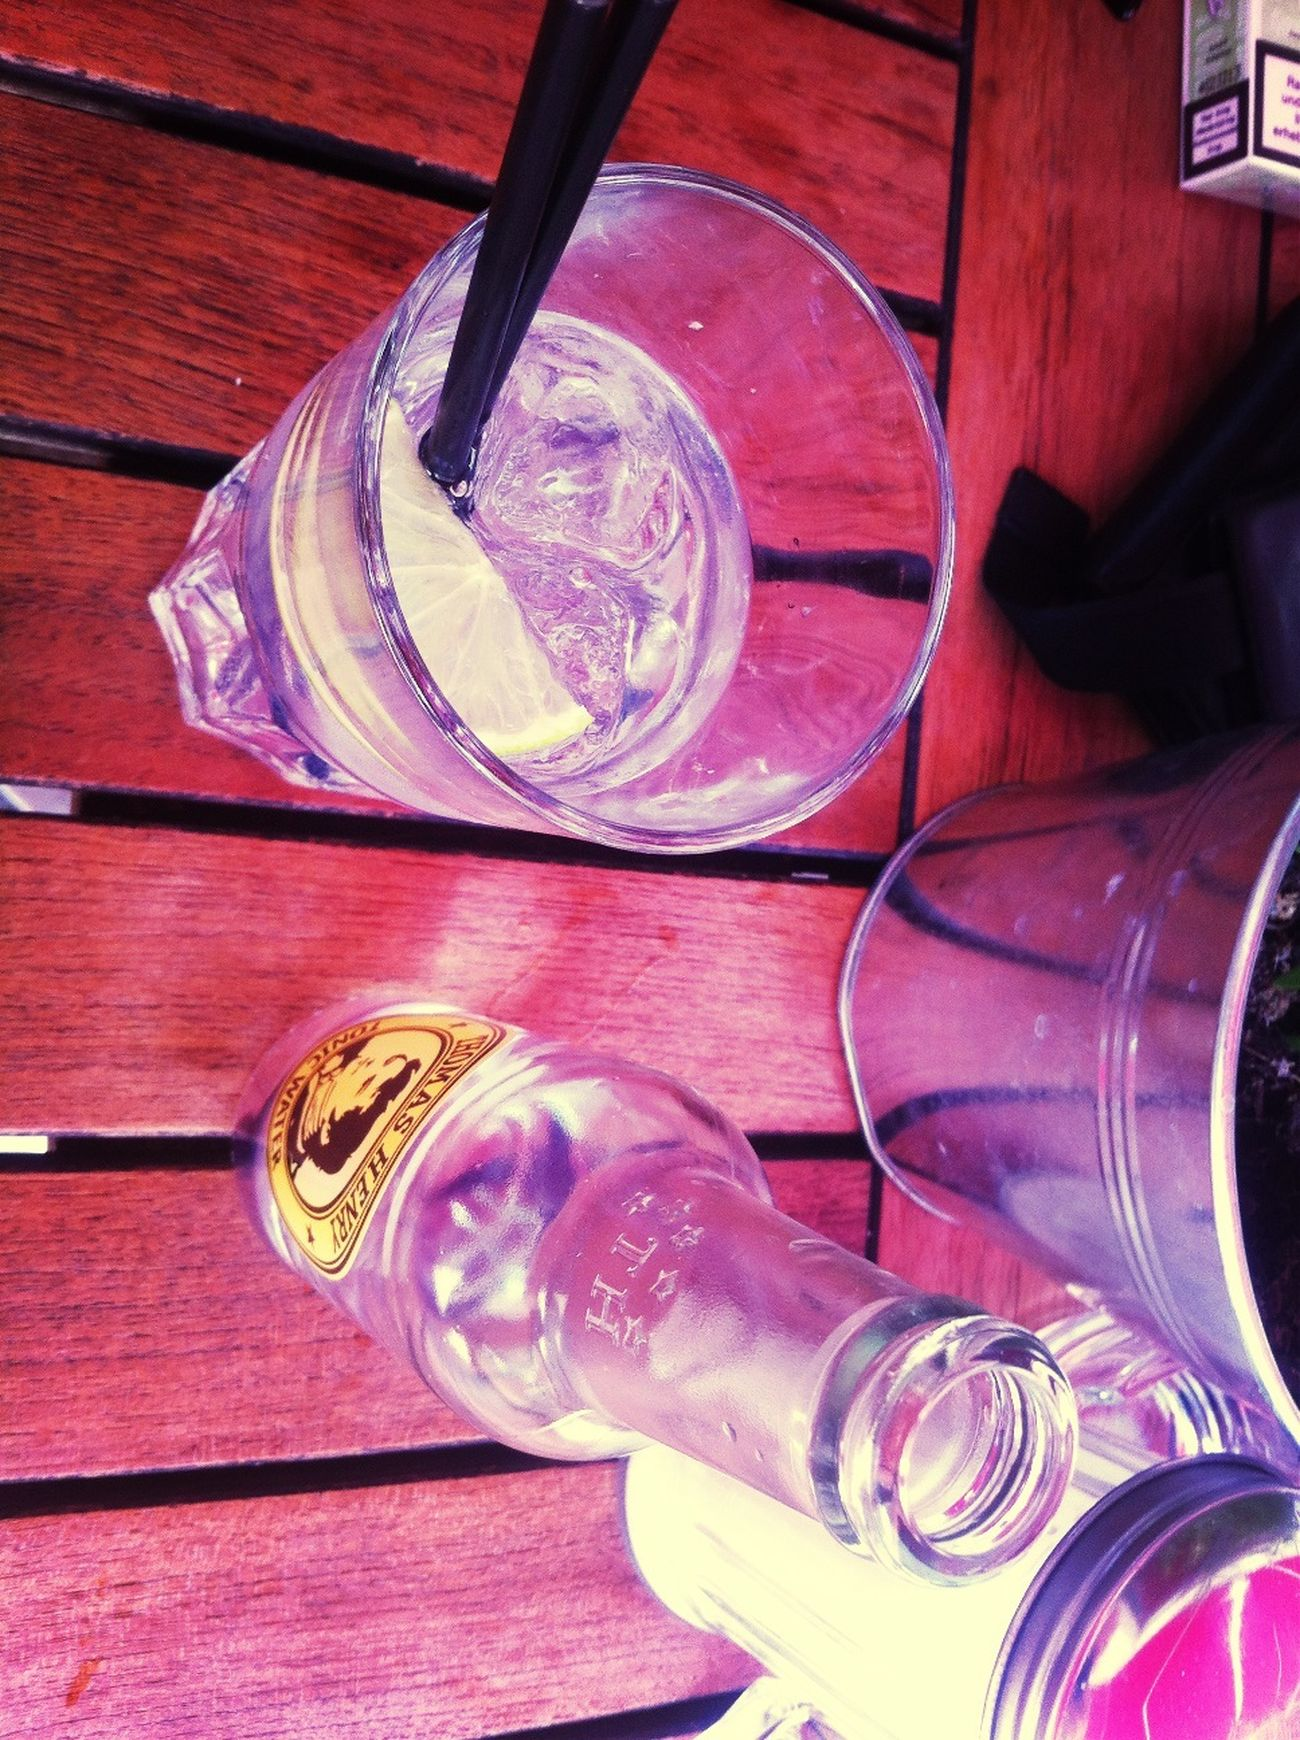 Gintonic Lunch Time! Summer Vibes